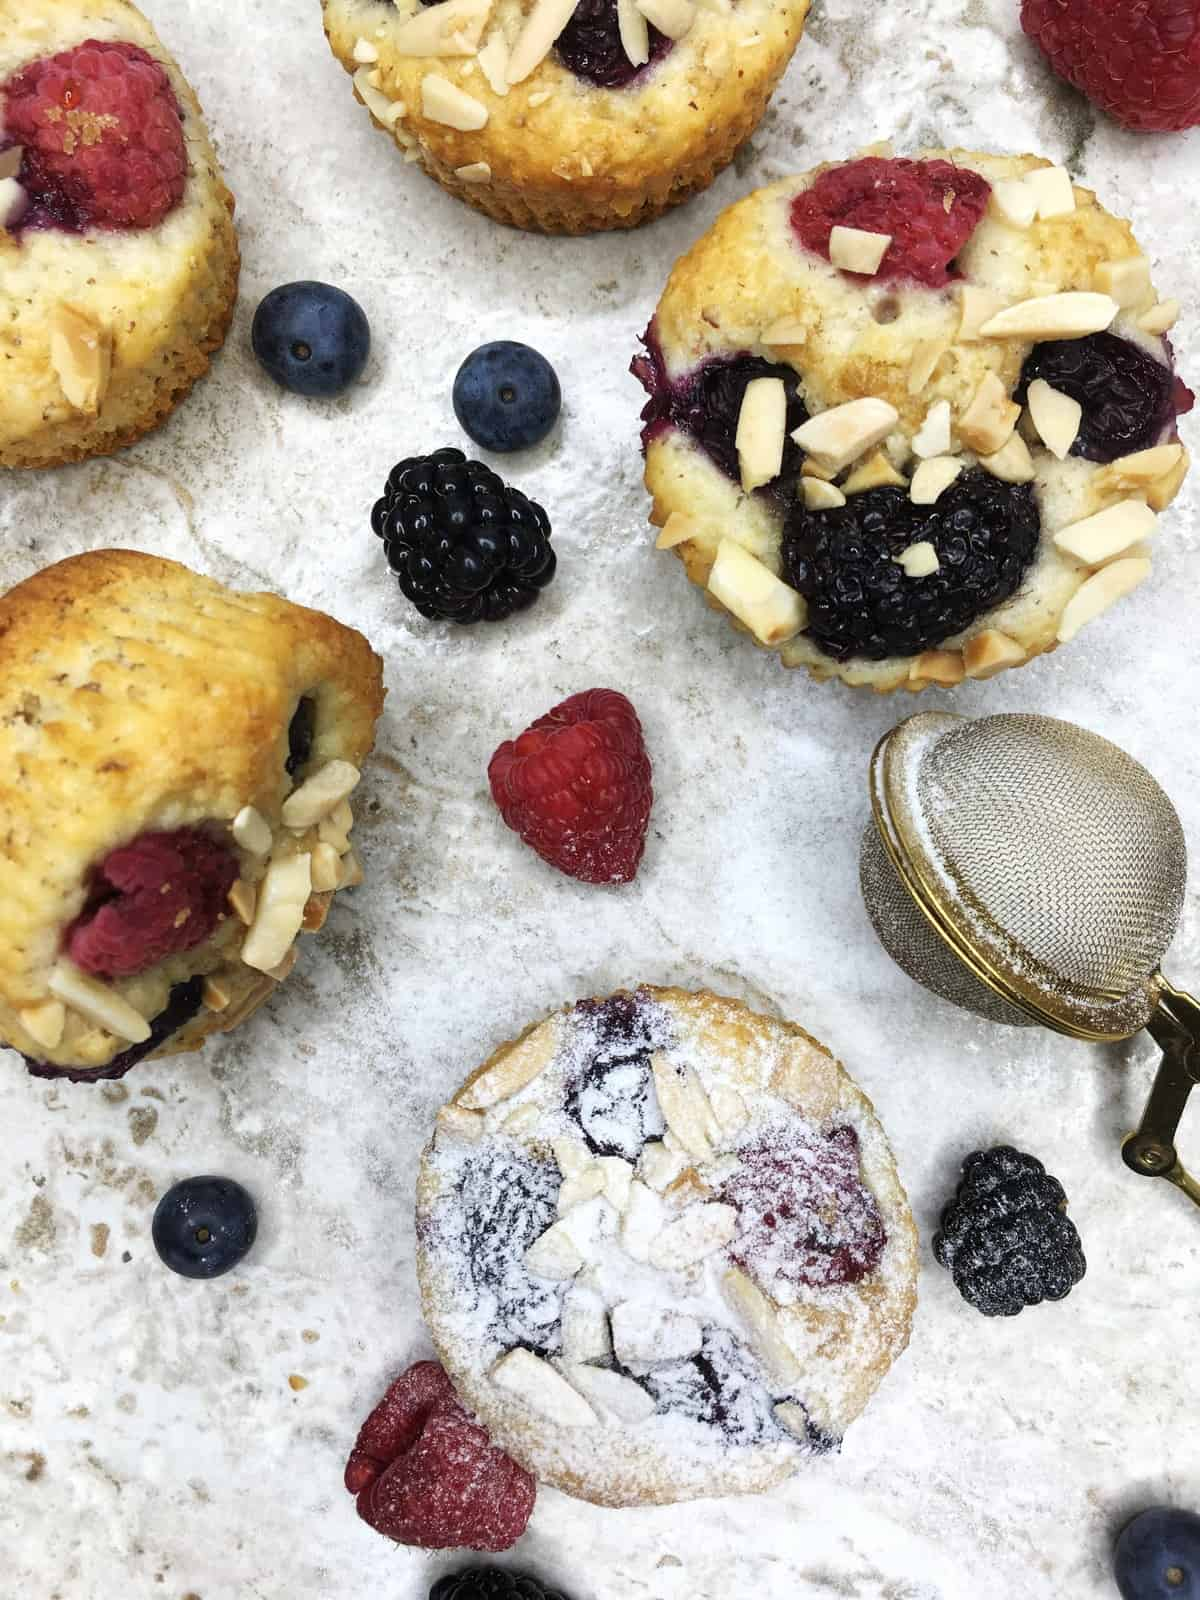 Muffins topped with mixed berries, almonds, icing sugar and fresh red berries around: Overhead view